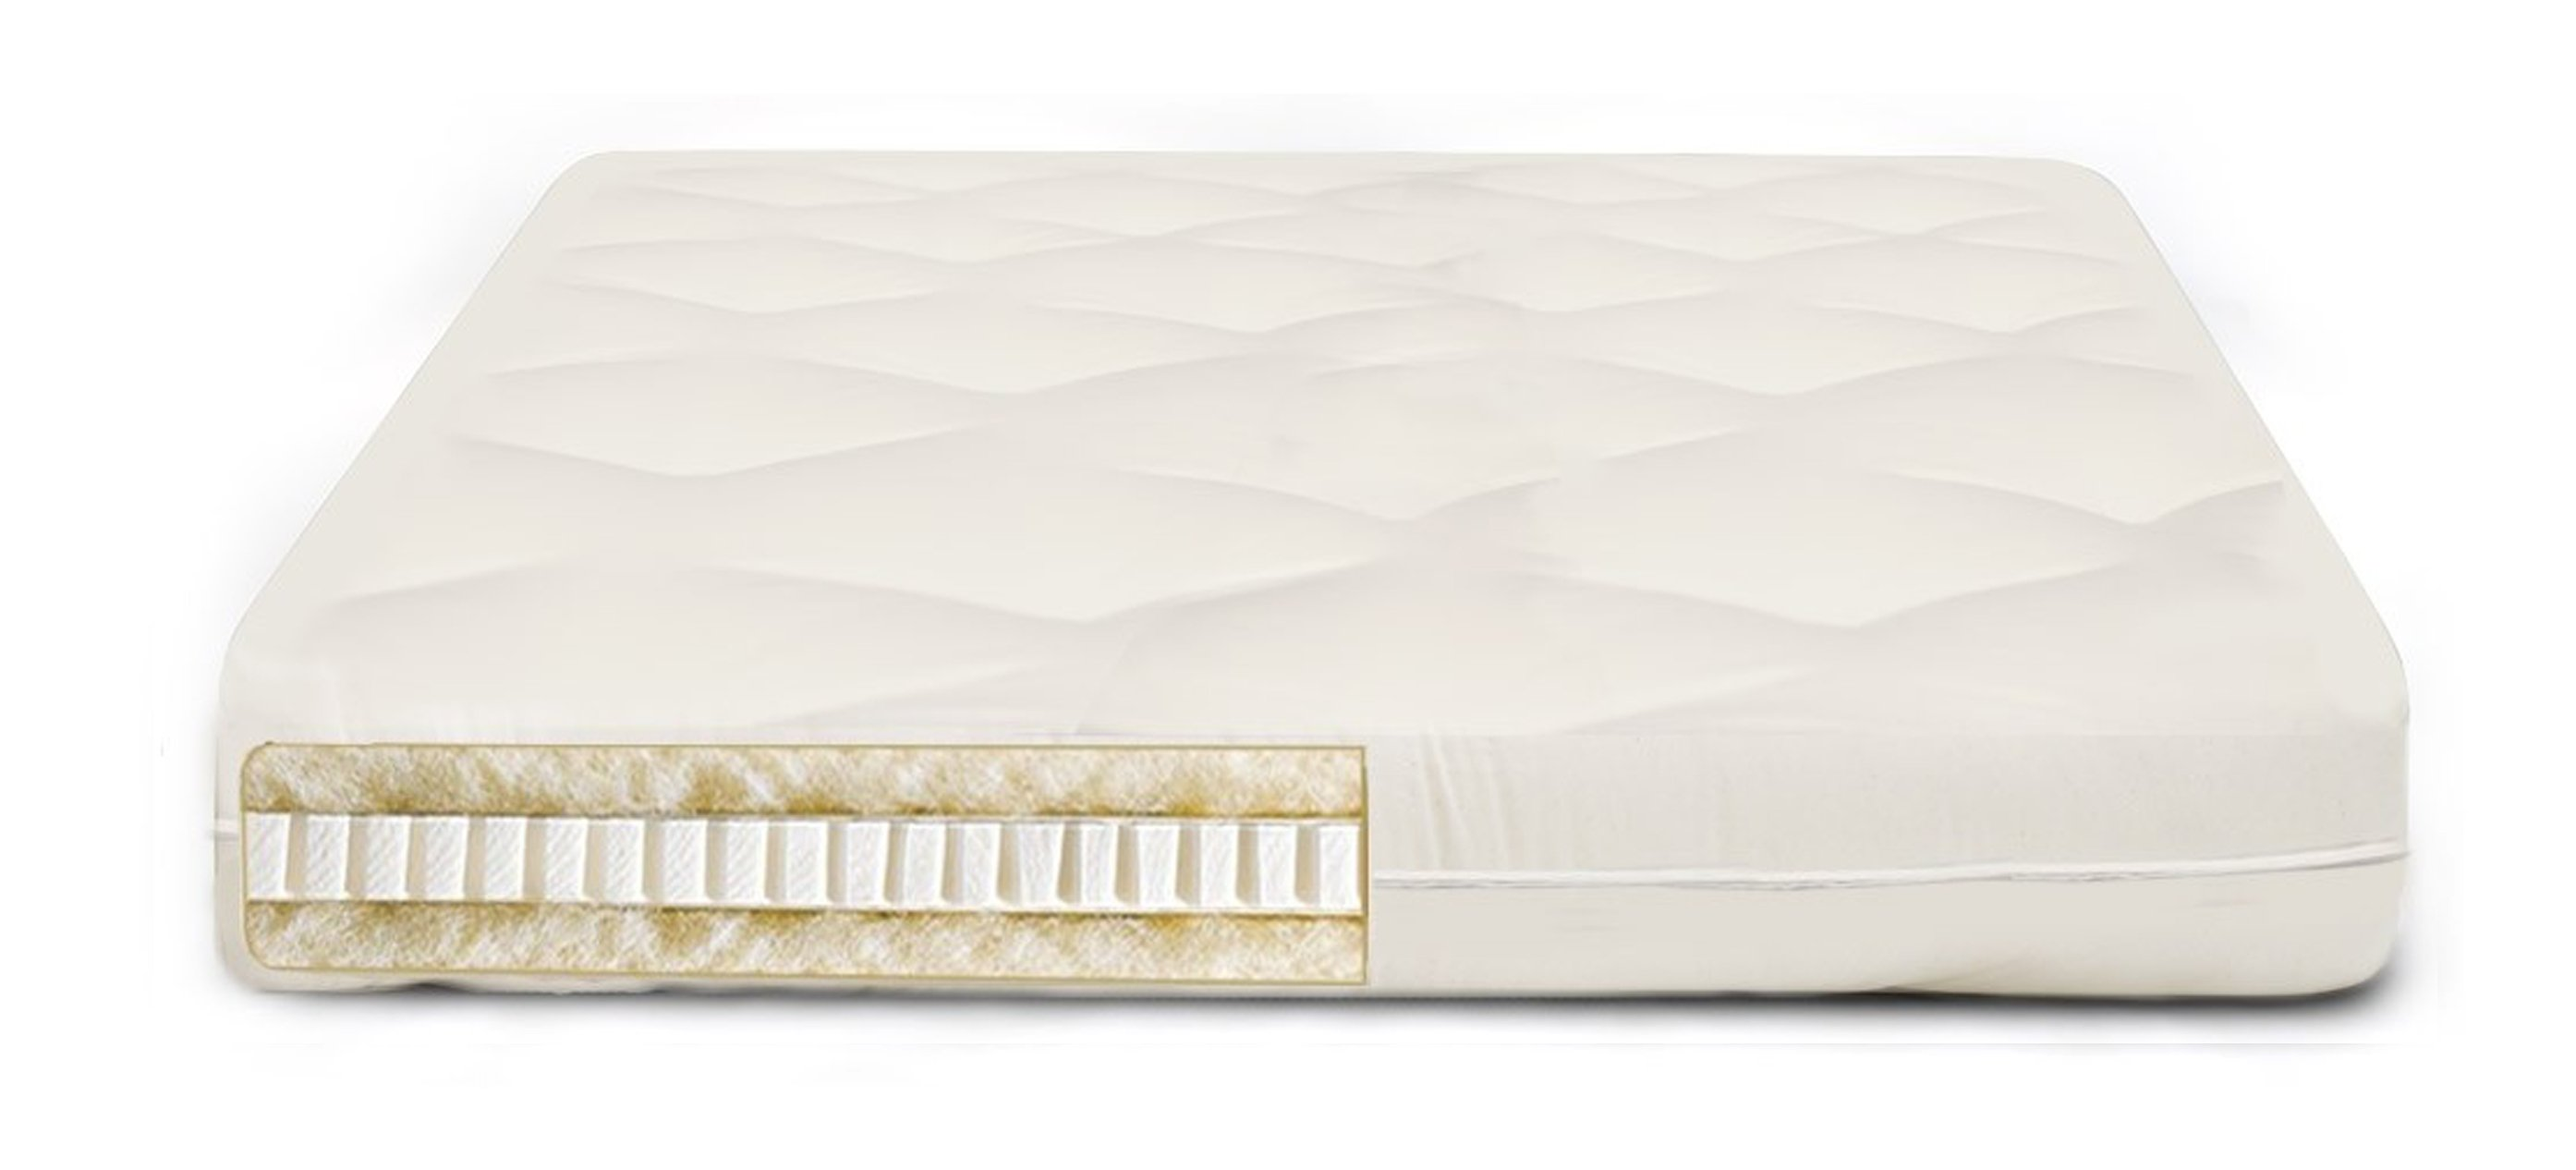 Natural Ecopure Nest Wool Futon Mattress Medium Firm By Tfsleepwe Designed The For Anyone Seeking A Supremely